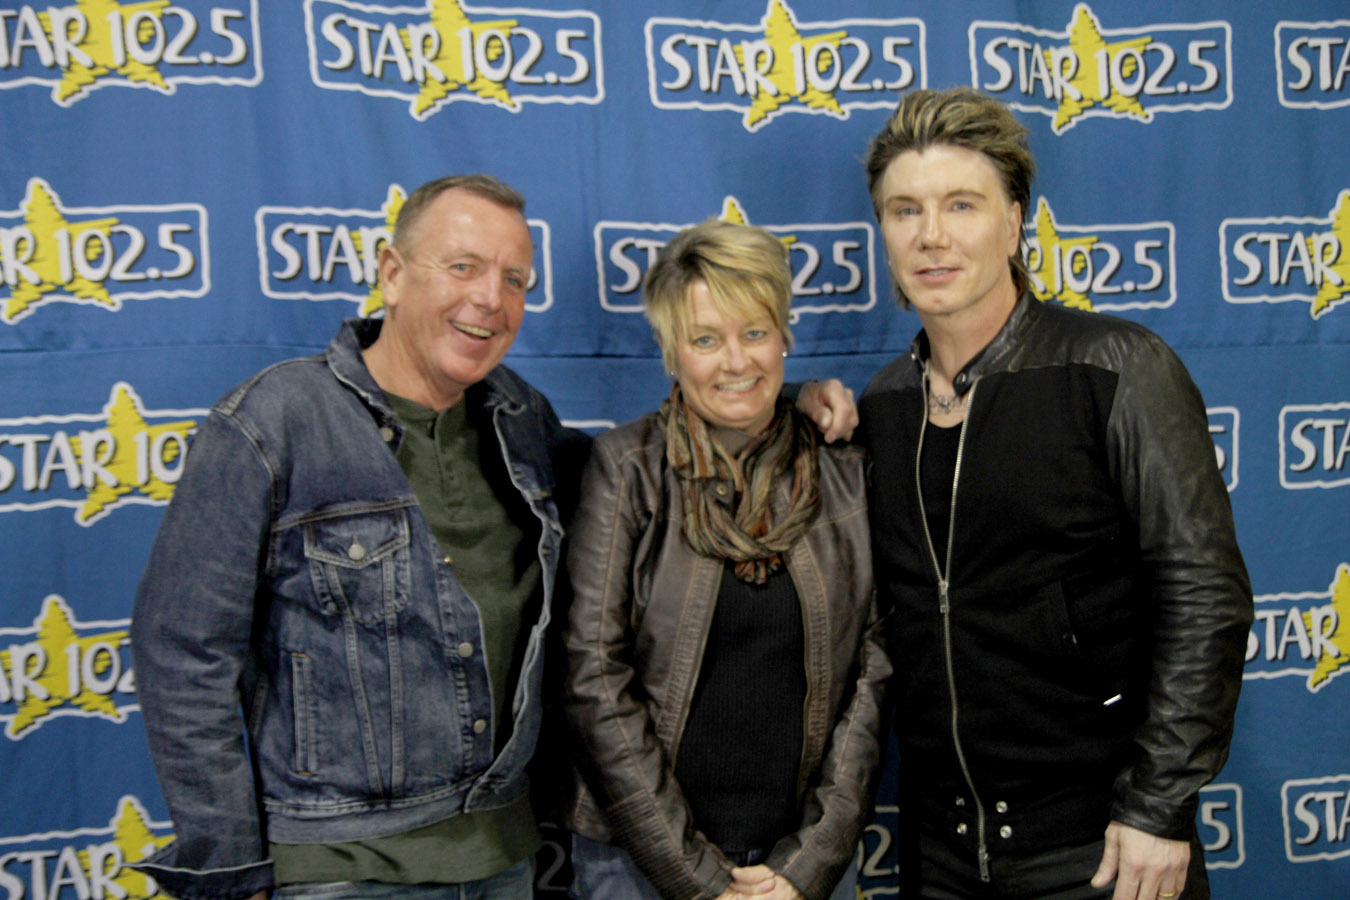 Johnny rzeznik meet and greet star 1025 kristyandbryce Choice Image